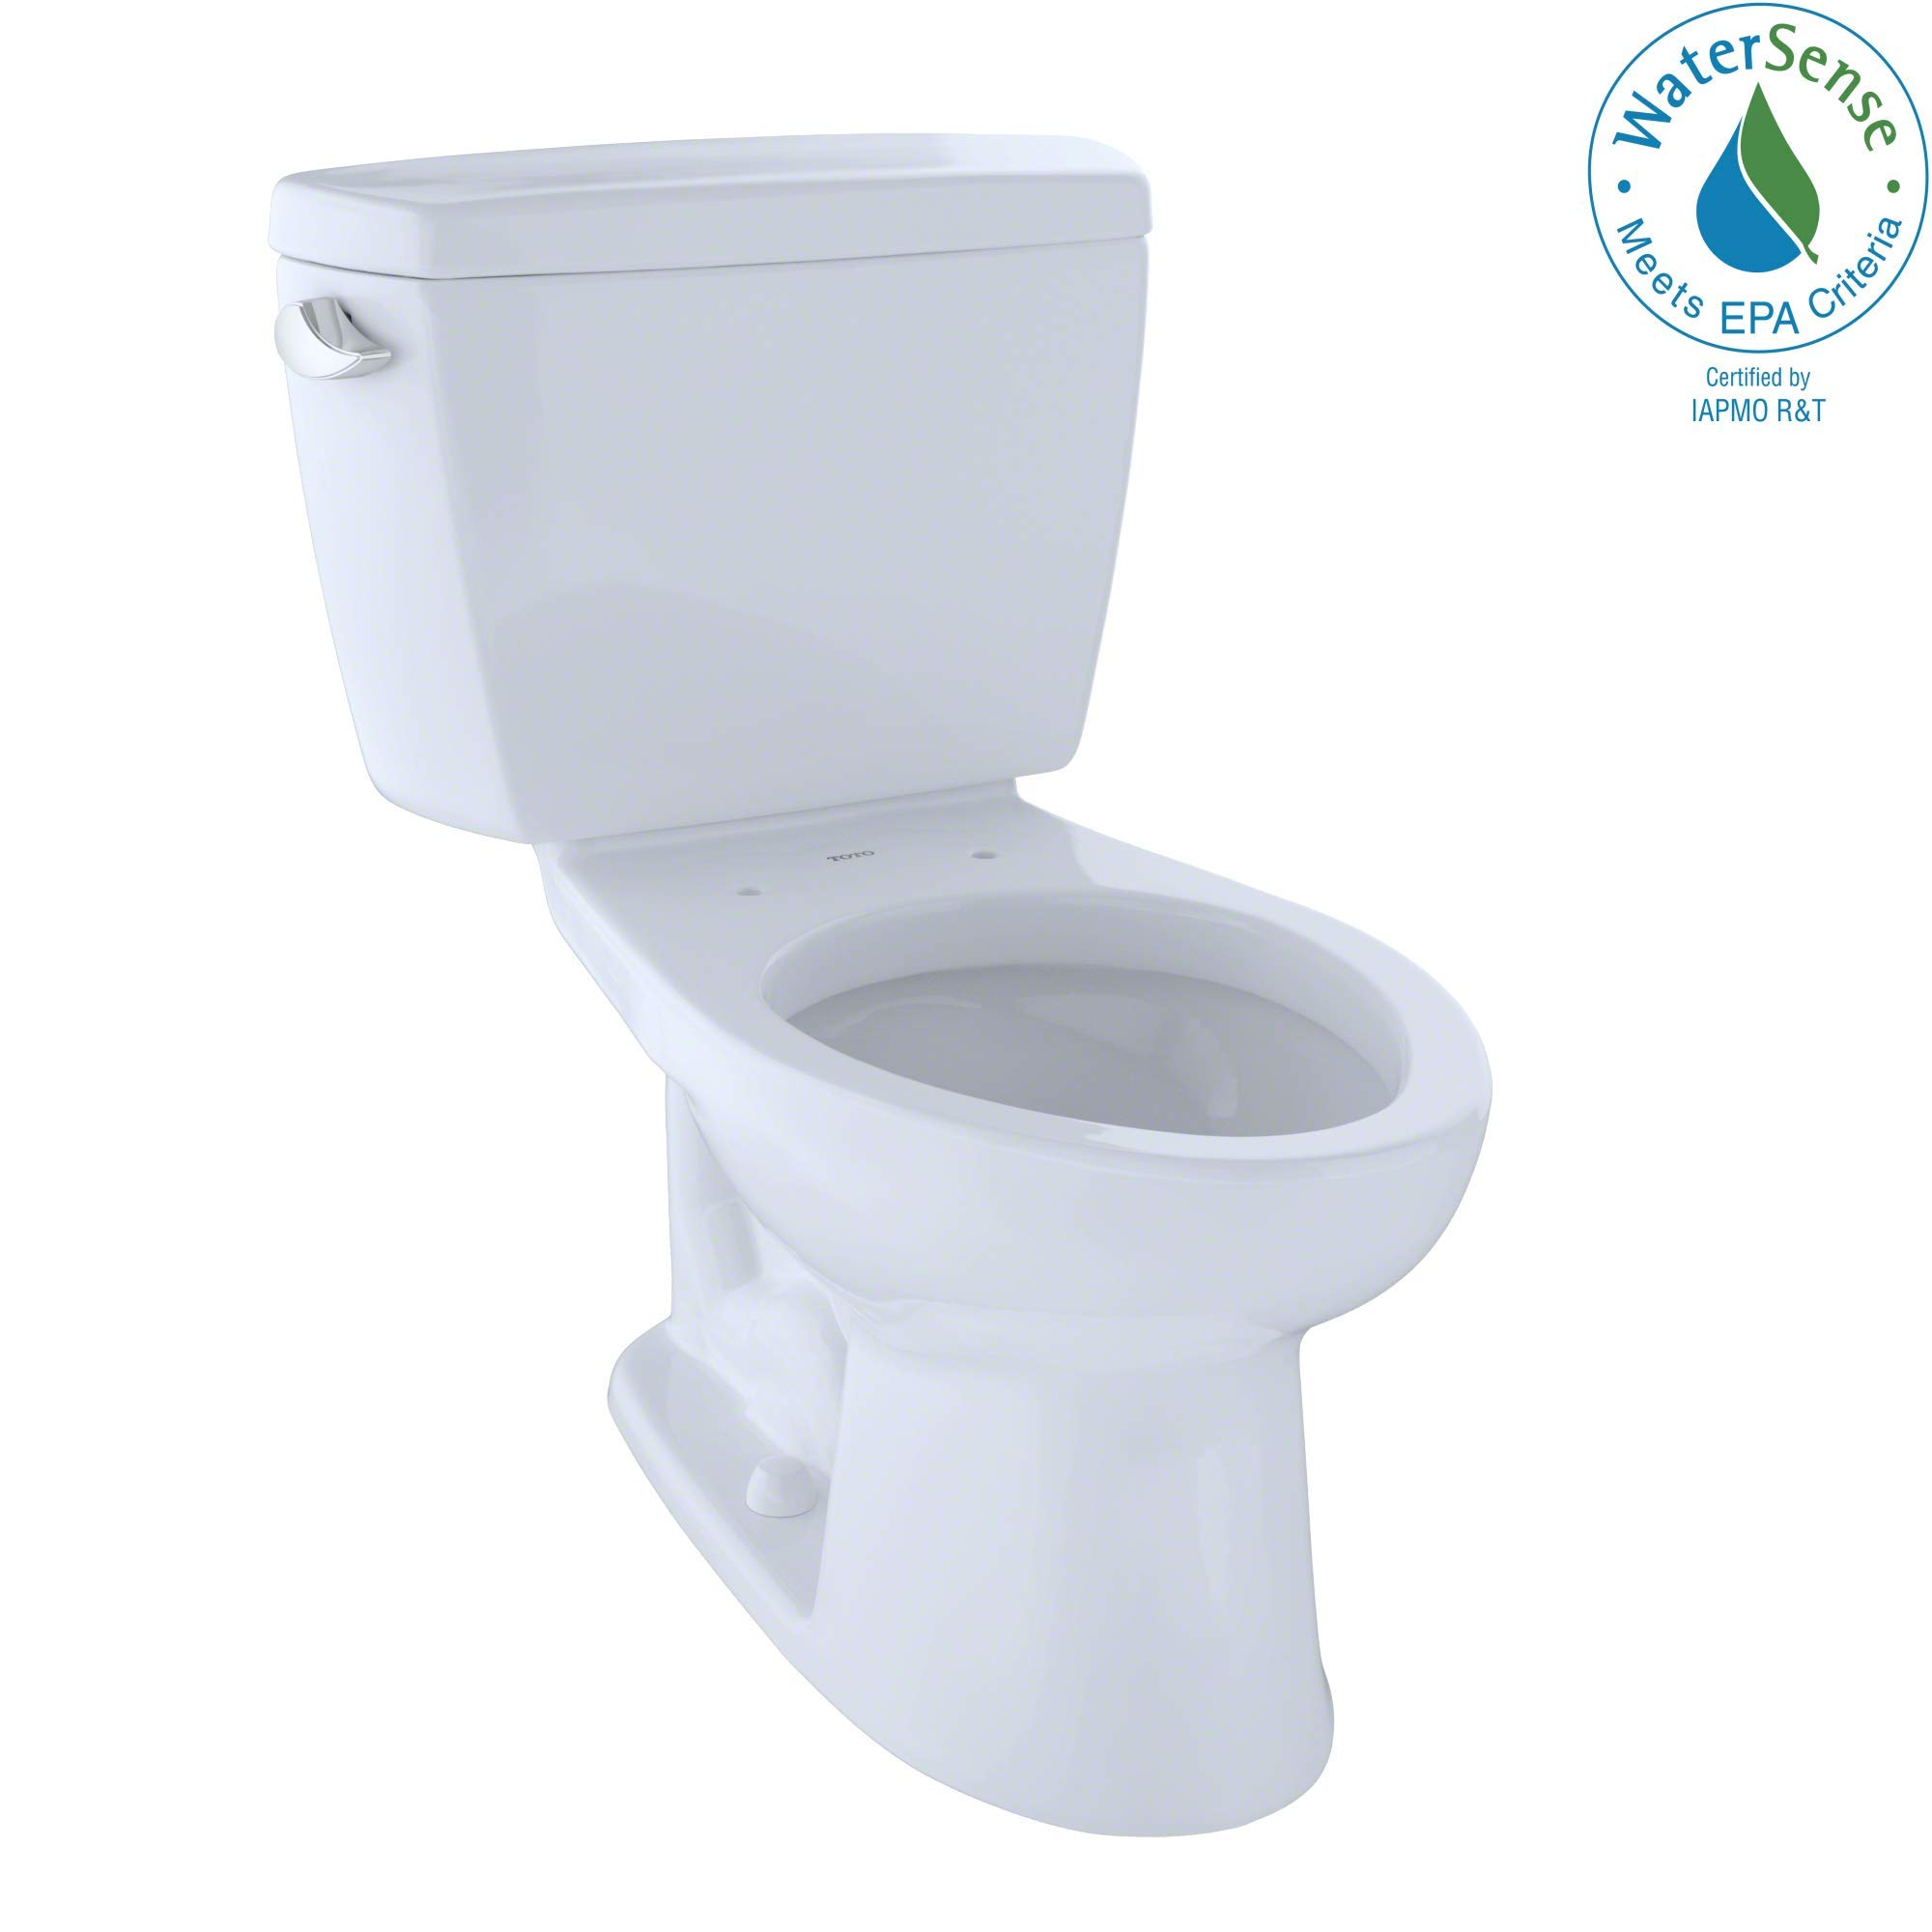 TOTO CST744EL#01 Eco Drake Two-Piece Elongated 1.28 GPF ADA Compliant Toilet, Cotton White by TOTO